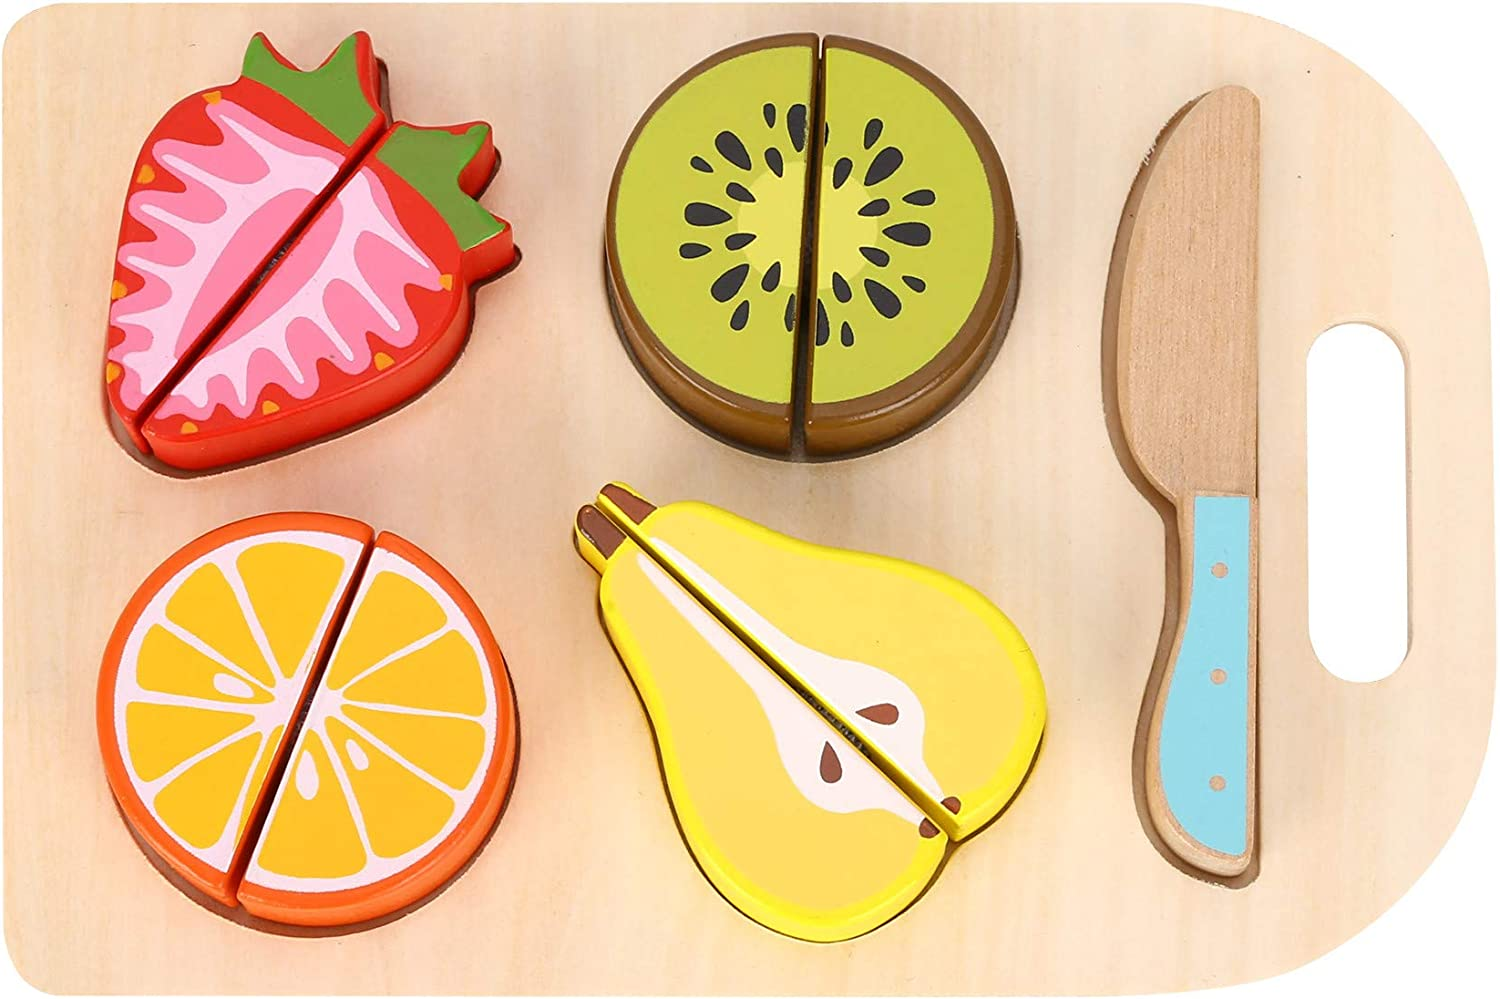 Learning Curve Amazon Exclusive Fruit Salad Prep Board Playset for Kids, Fruit Salad Puzzle